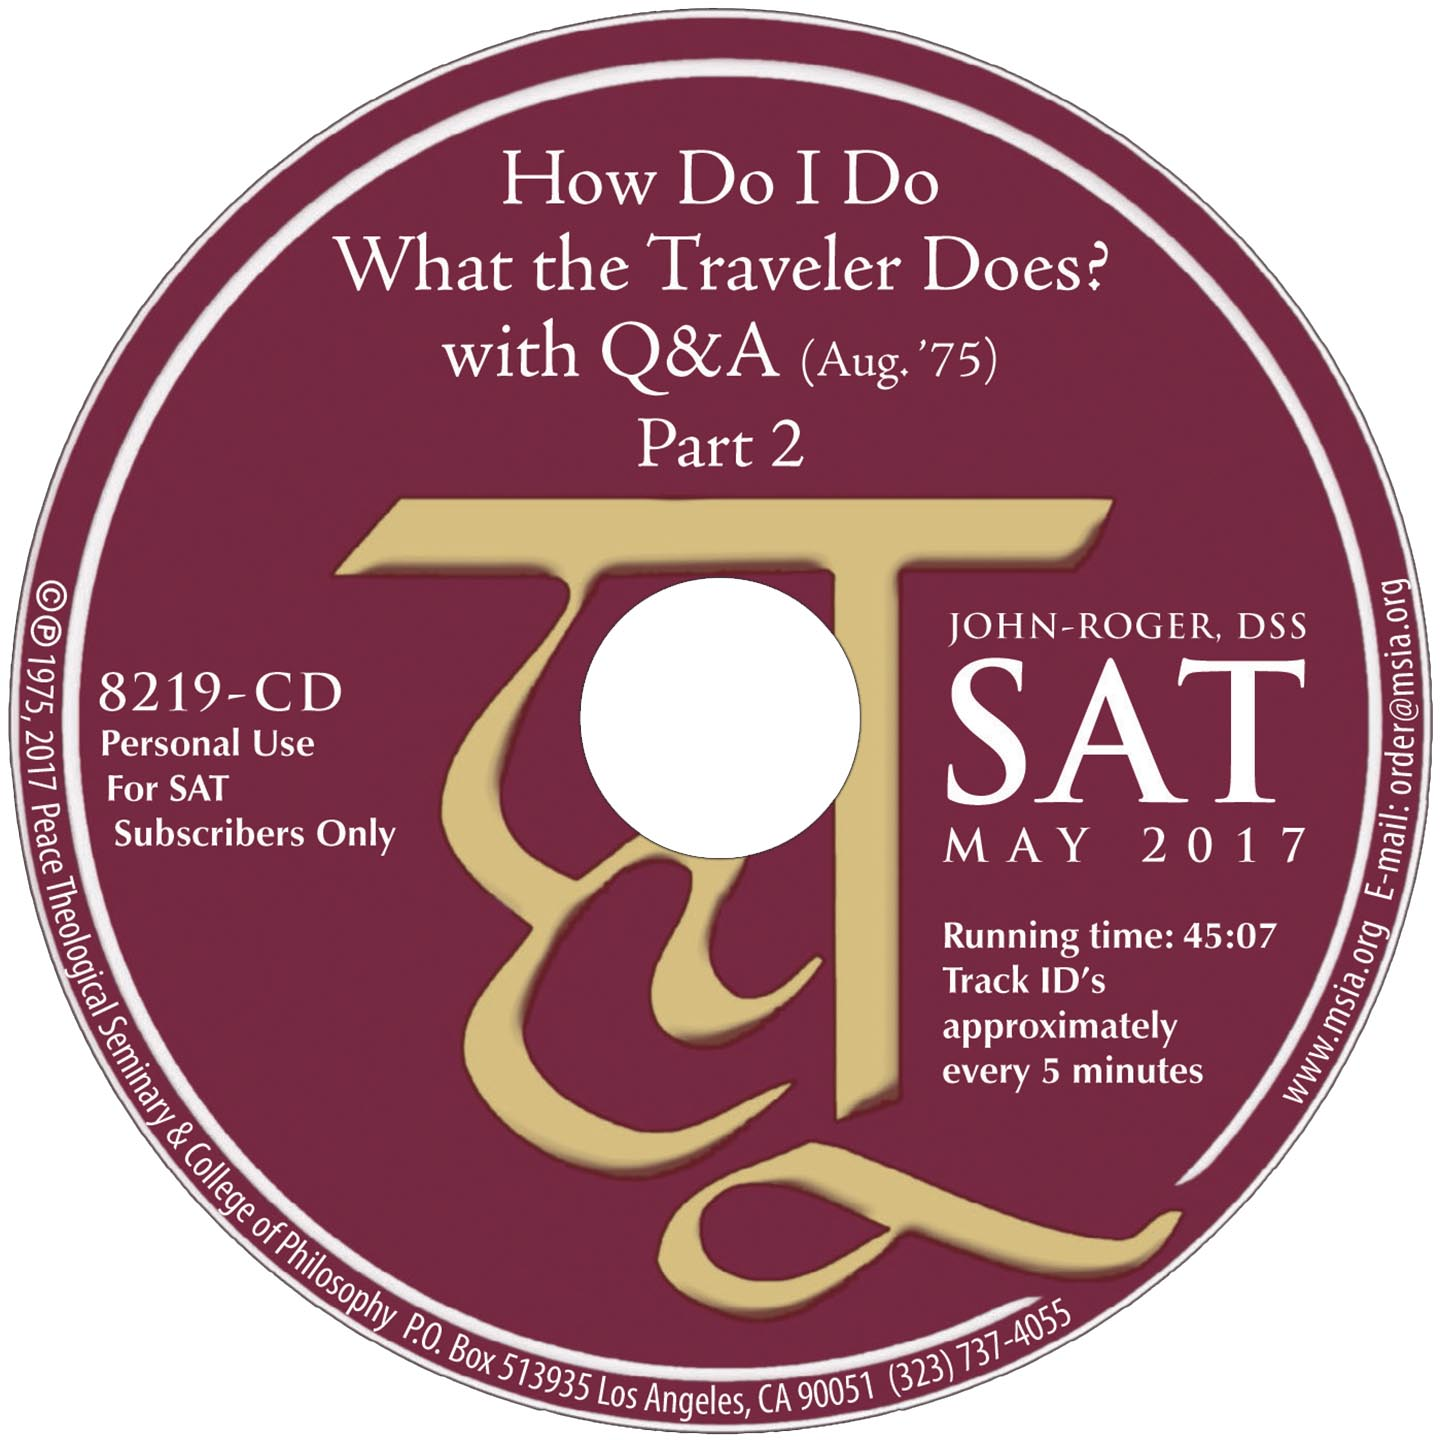 How Do I Do What the Traveler Does? with Q&A Part 2 MP3